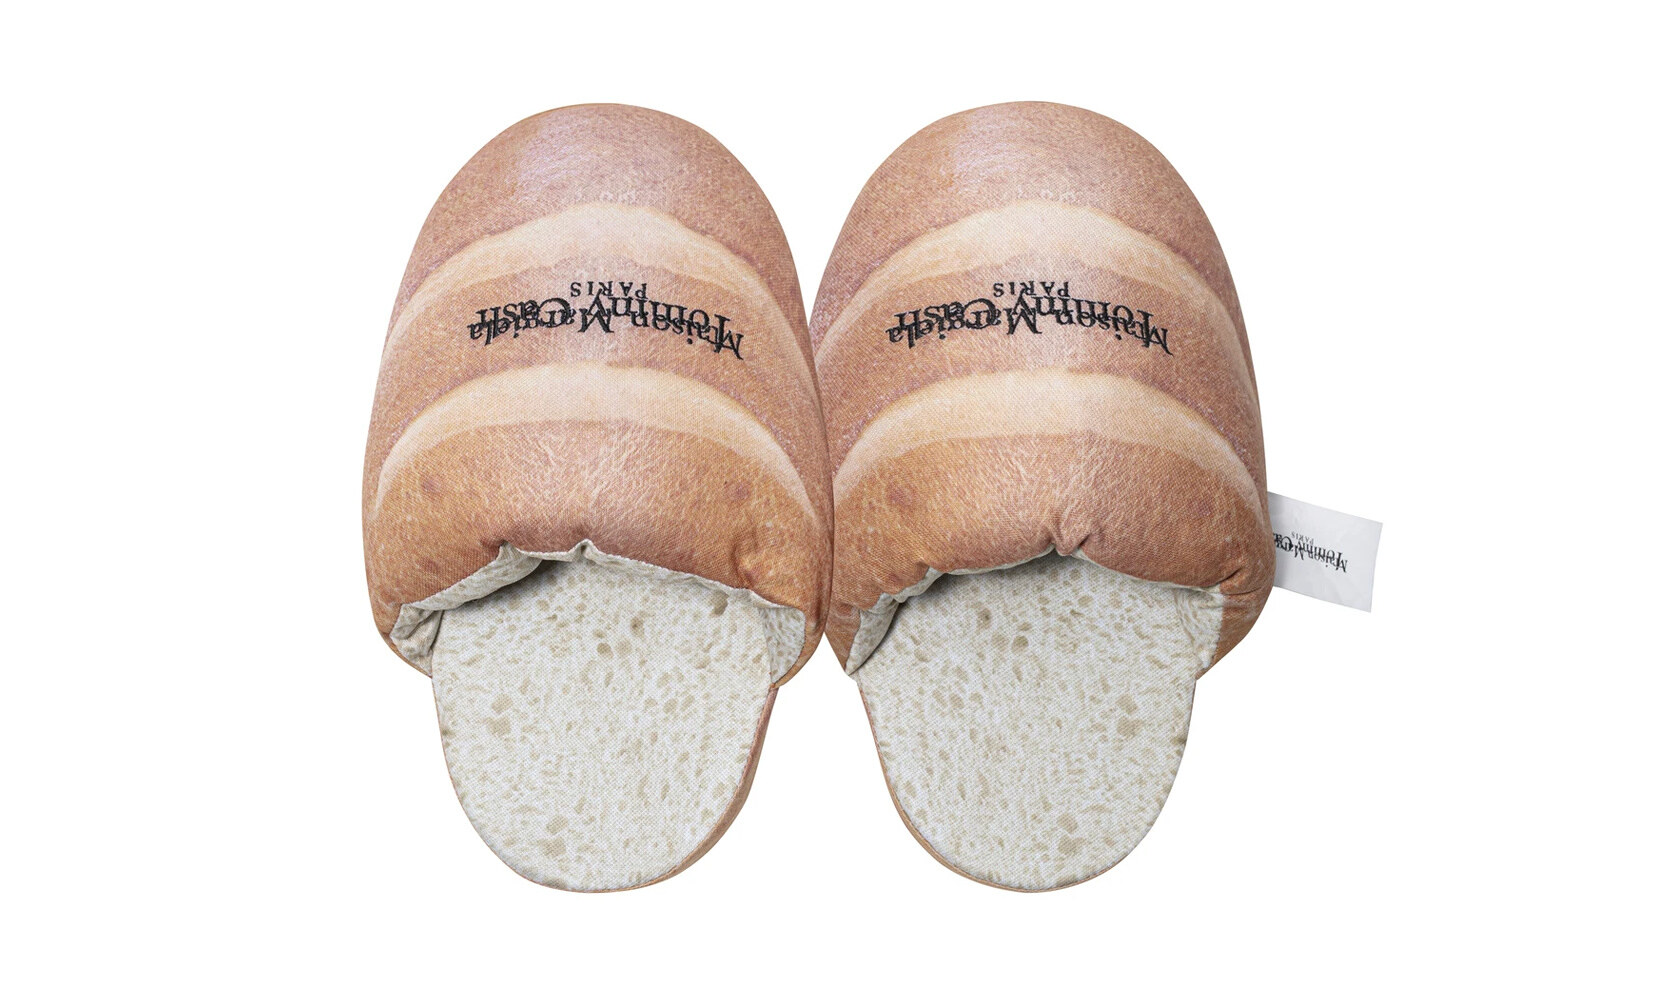 Maison Margiela x Tommy Cash Loafers